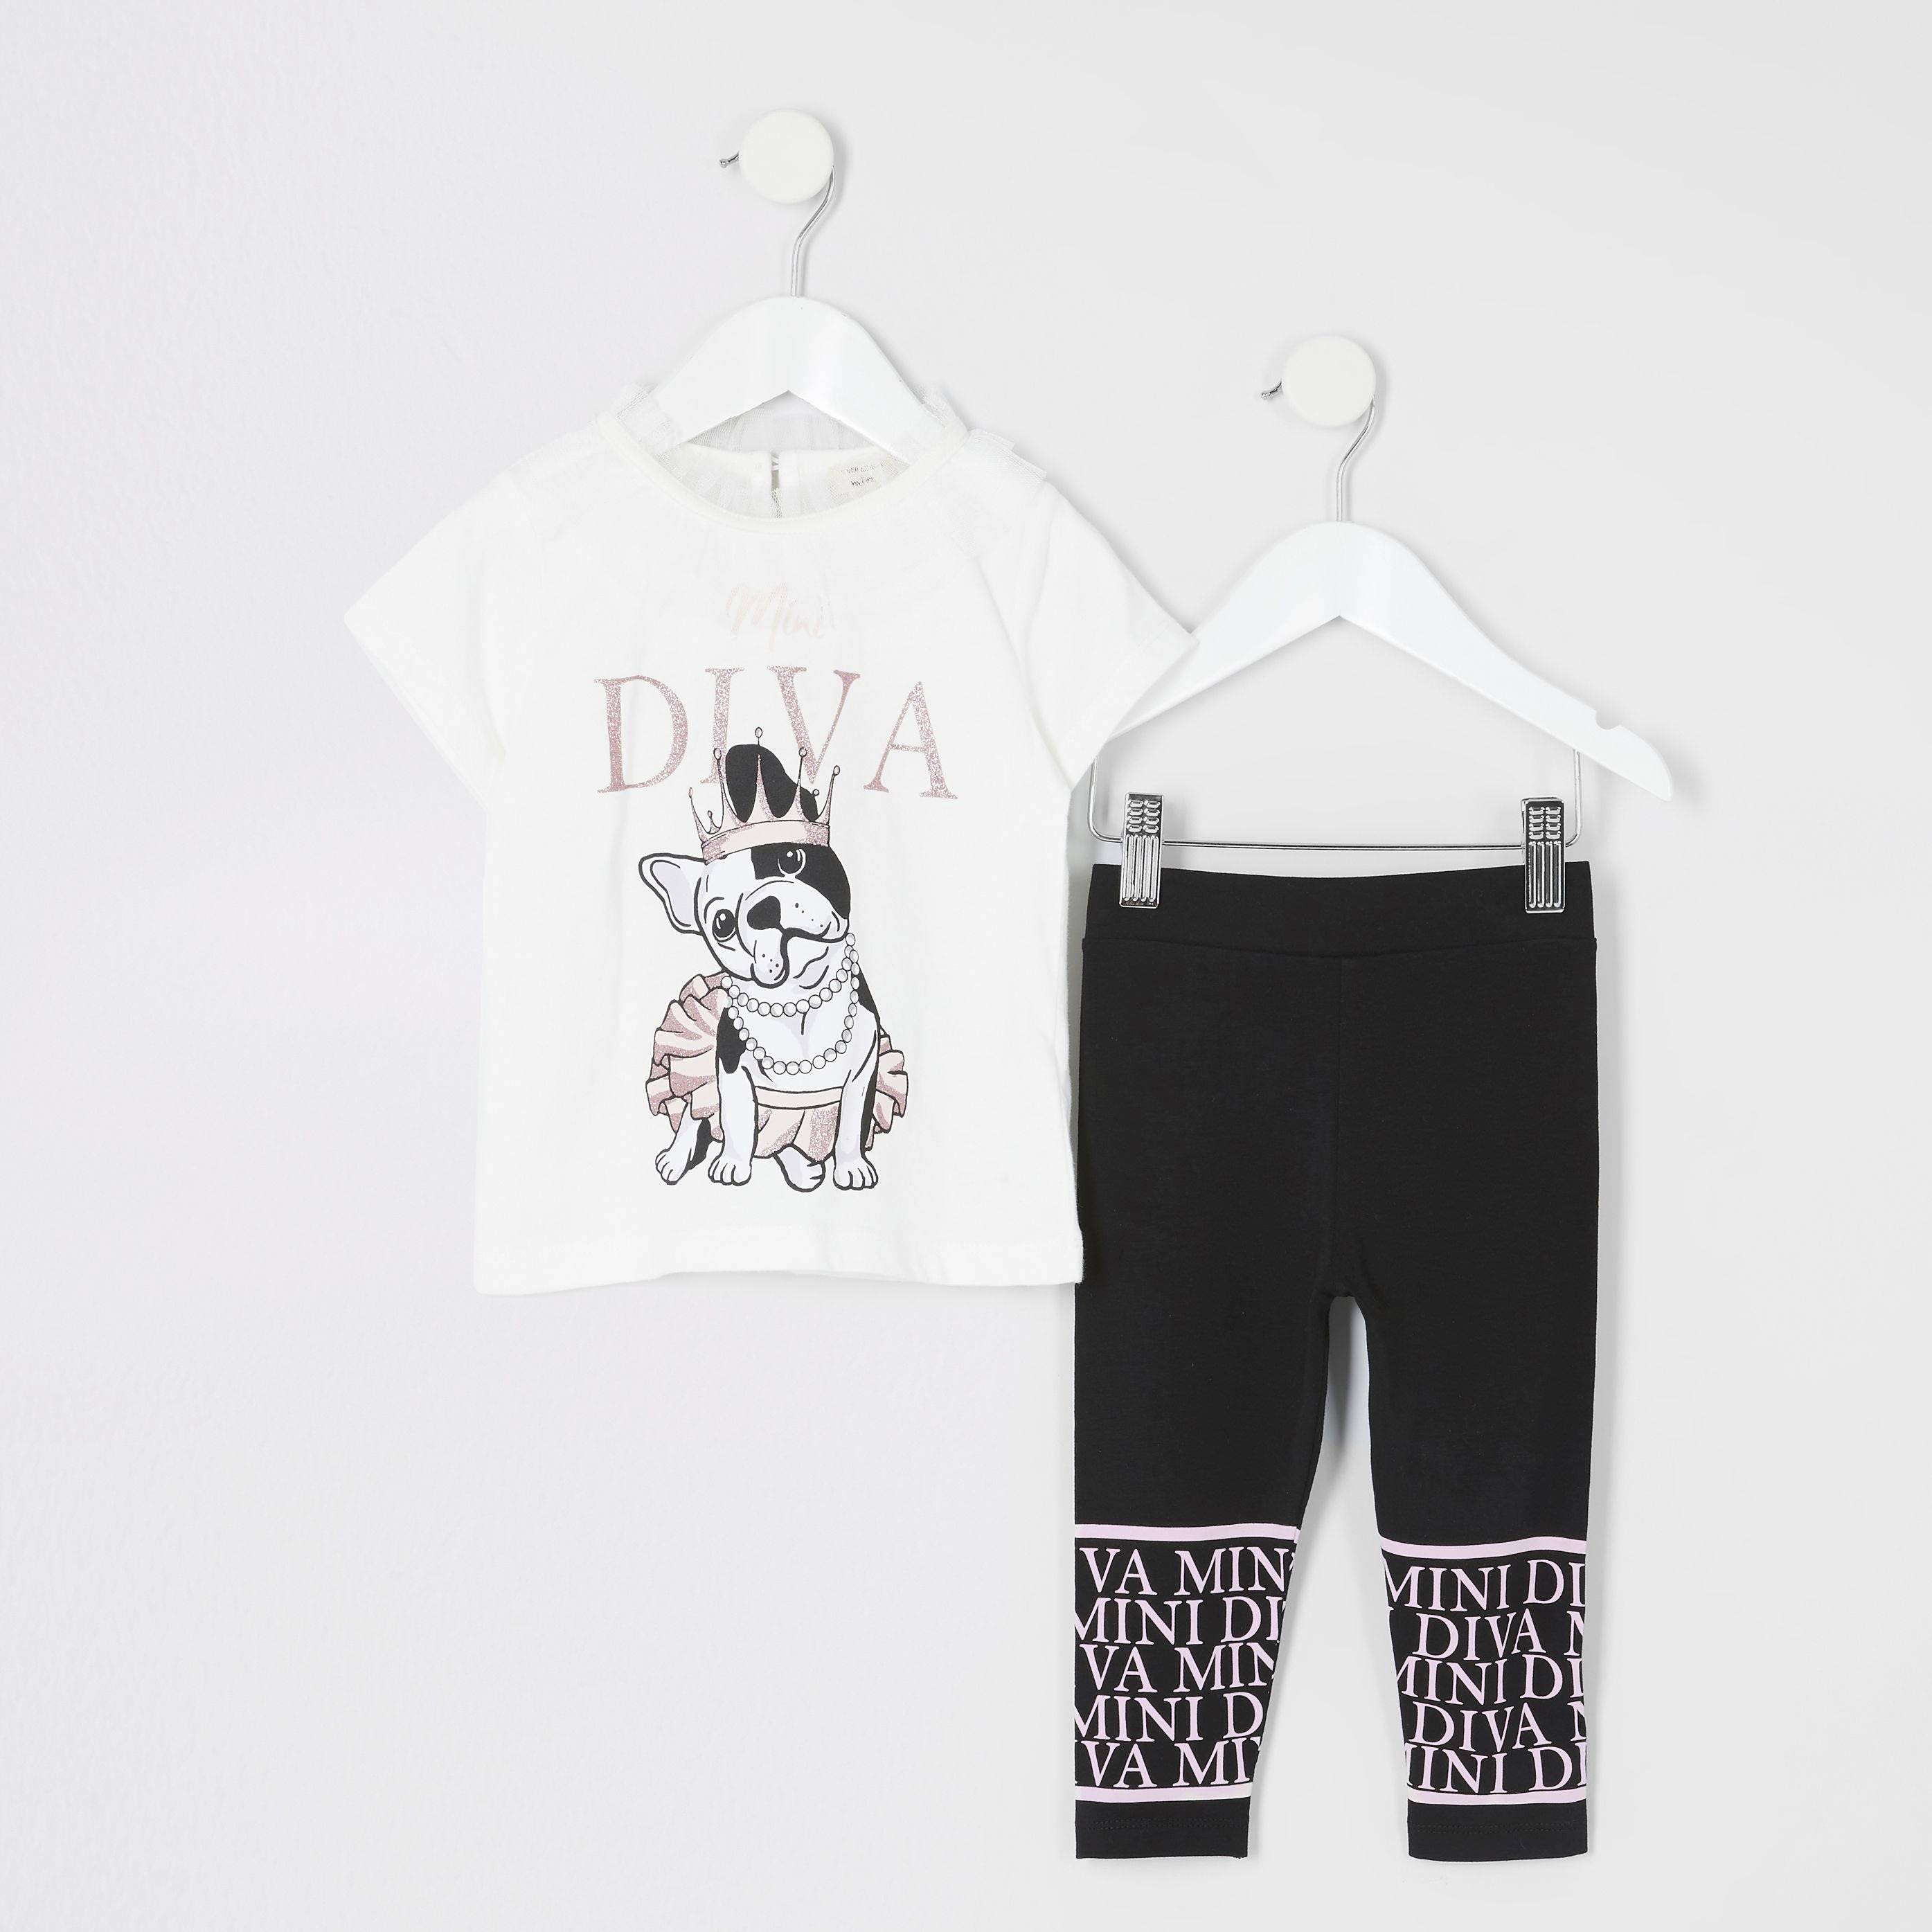 River Island Baby Girls Cream 'Diva' T-shirt outfit (4-5 Yrs)